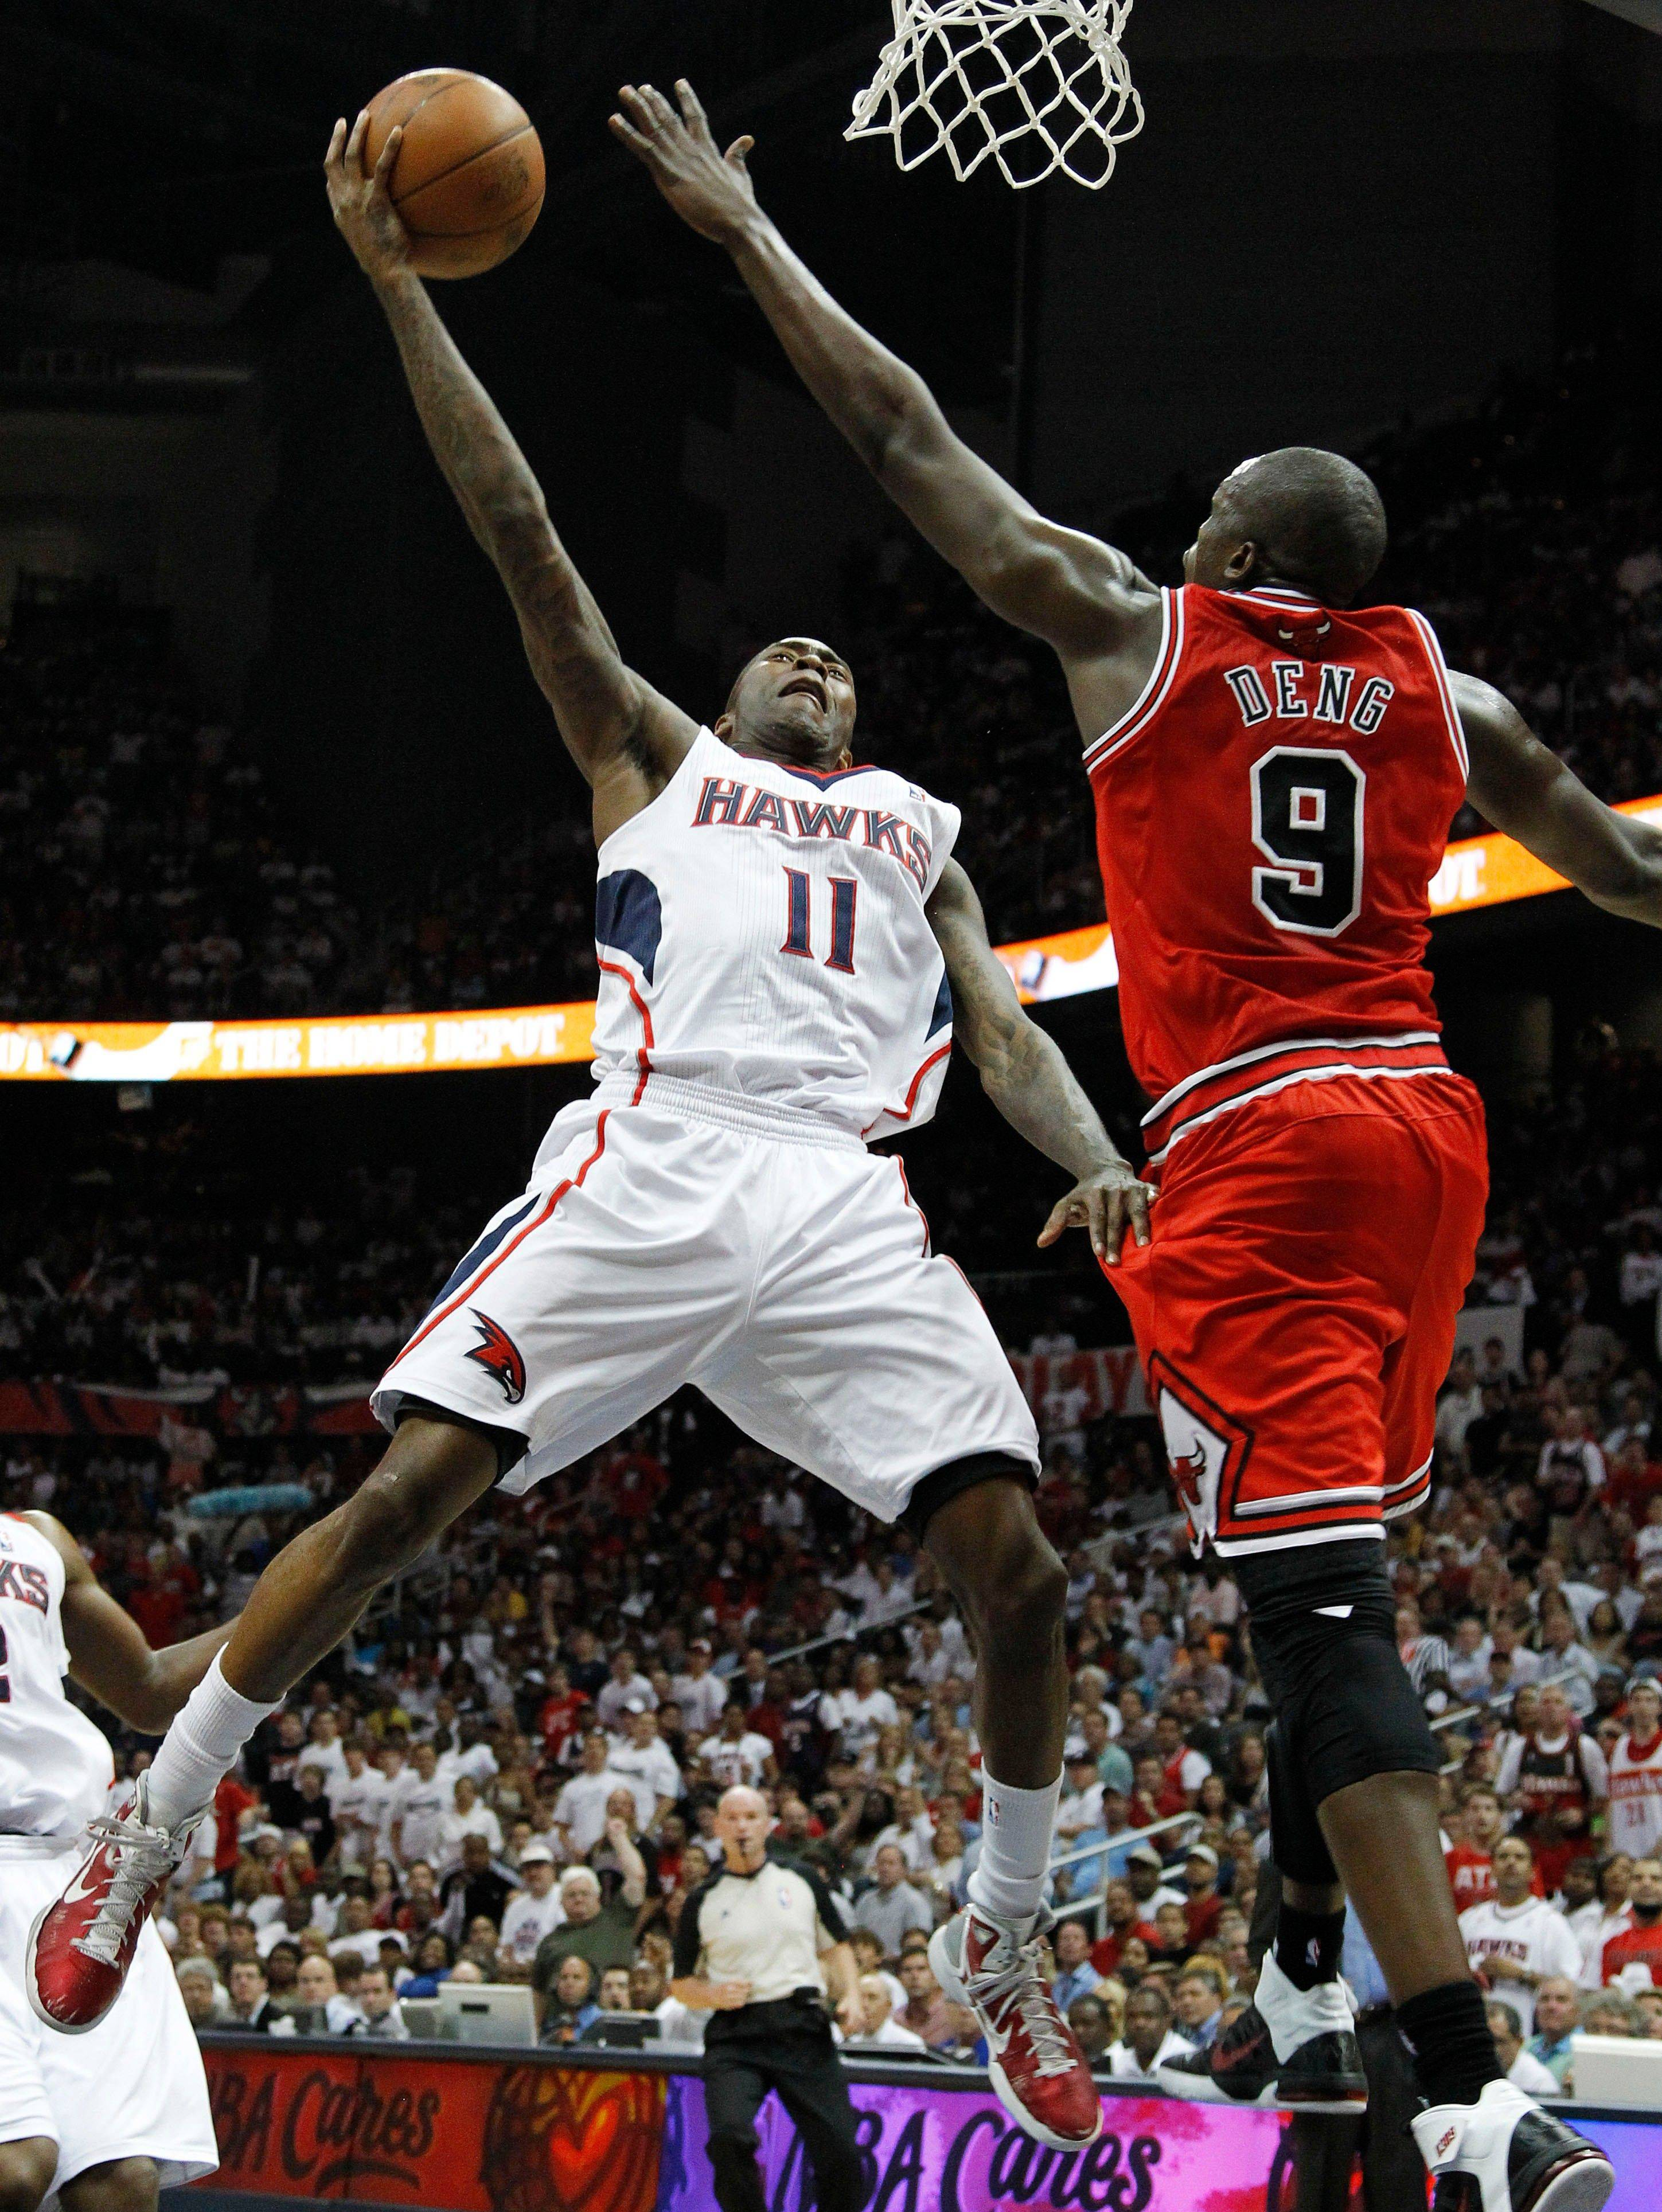 Atlanta Hawks guard Jamal Crawford (11) shoots as Luol Deng (9) defends in the first quarter.